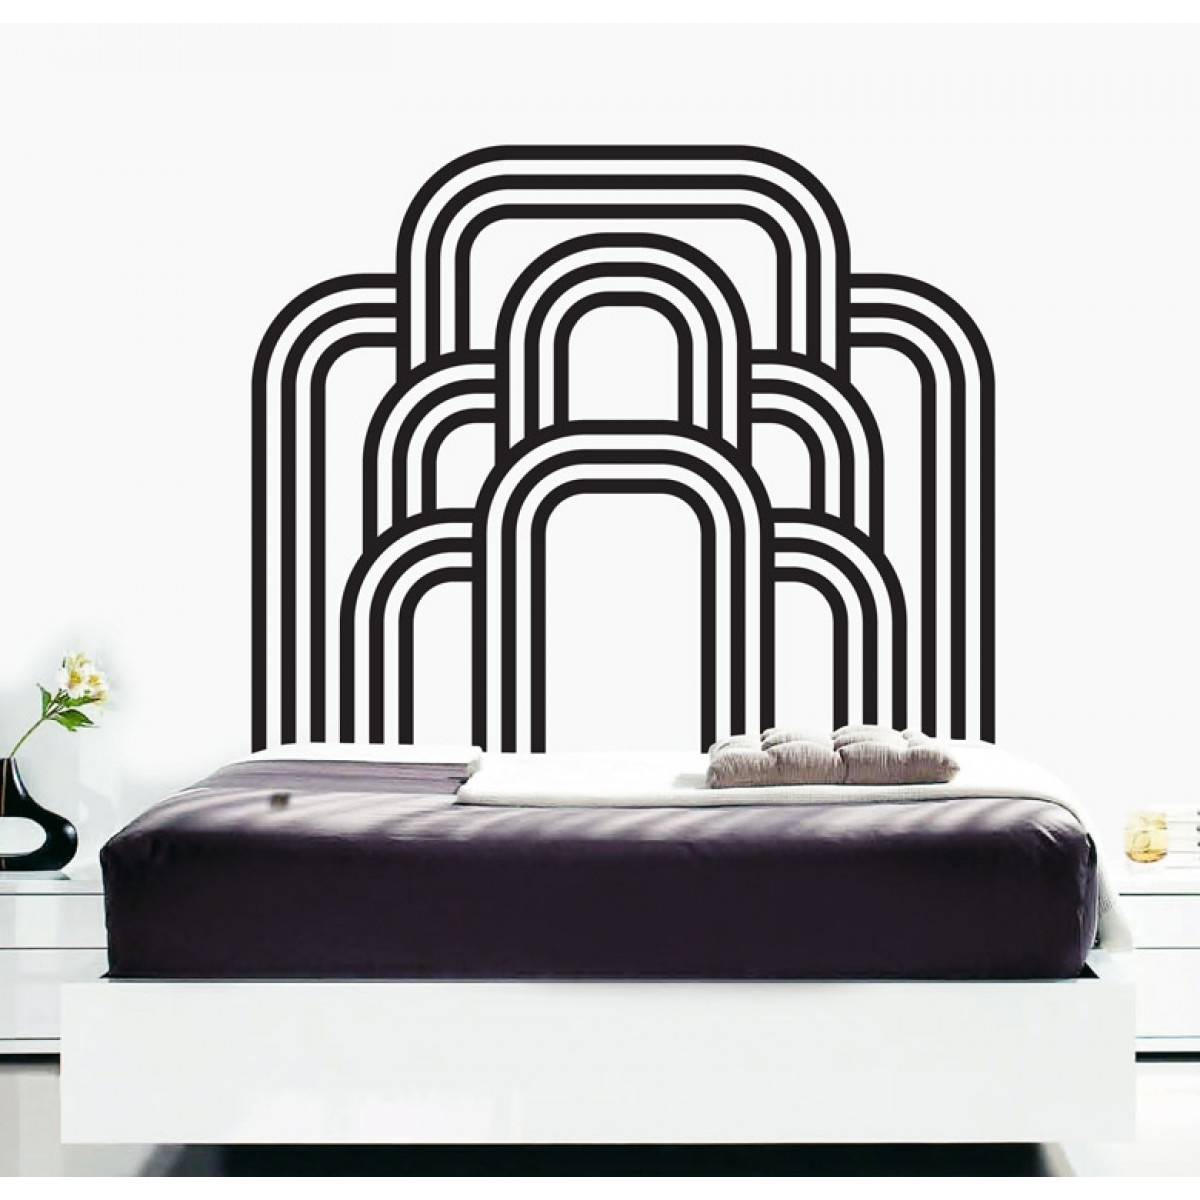 Wall Decals – Thewonderwalls® | Bedroom Art Deco Wall Stickers Within Most Current Art Deco Wall Art (View 6 of 20)